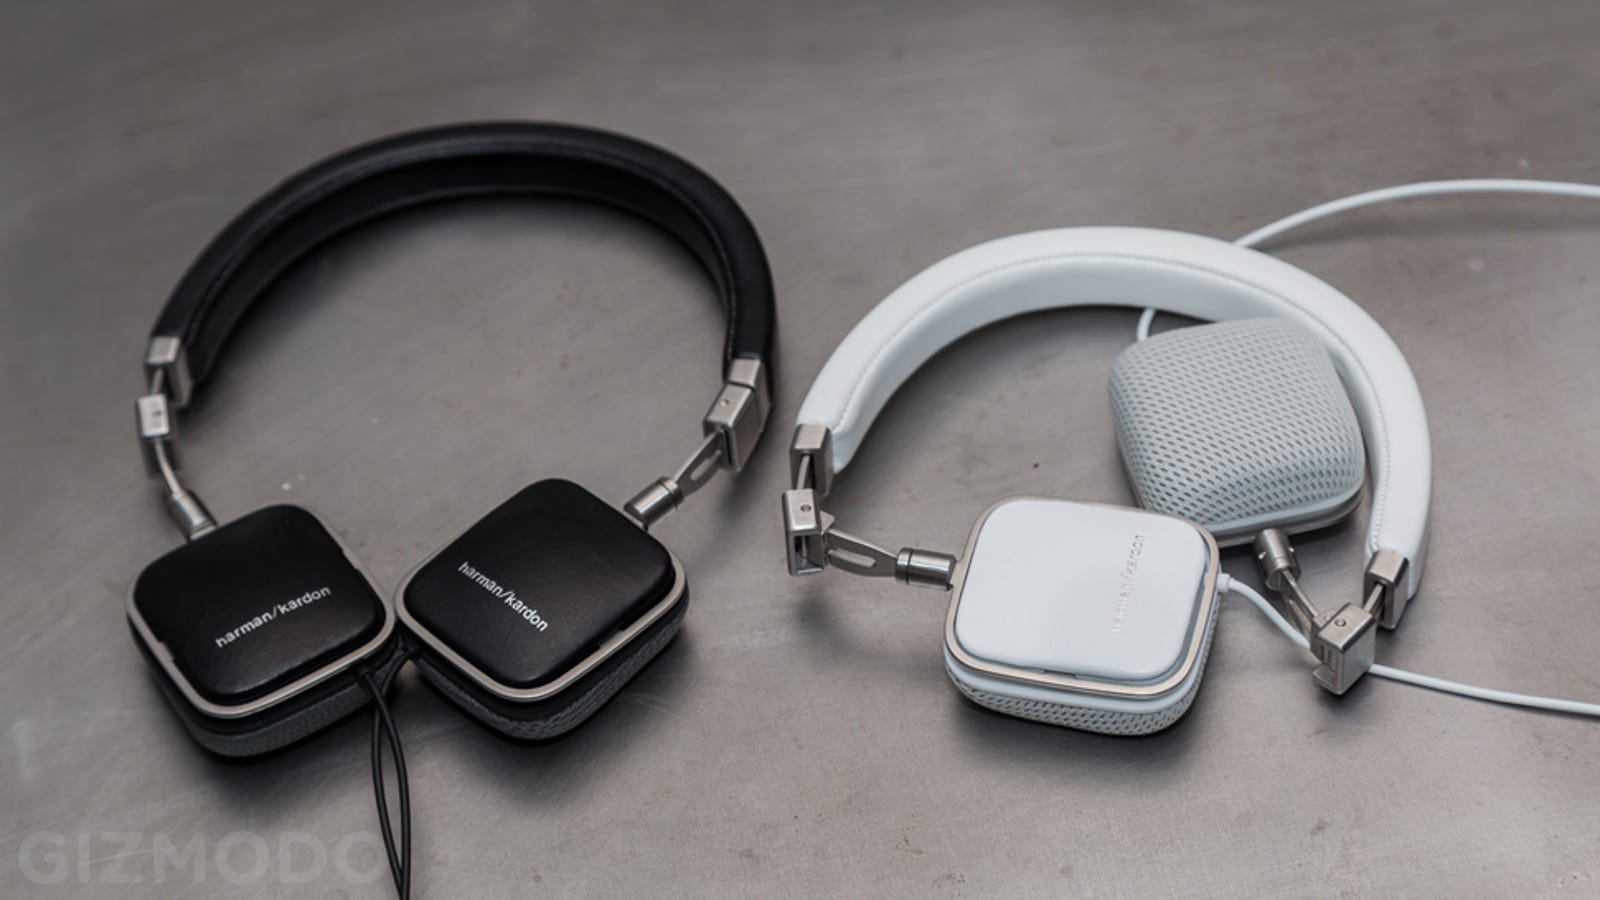 zolo liberty headphone charger - Harman Kardon SoHo Headphones: Same Great Sound, New Portable Package